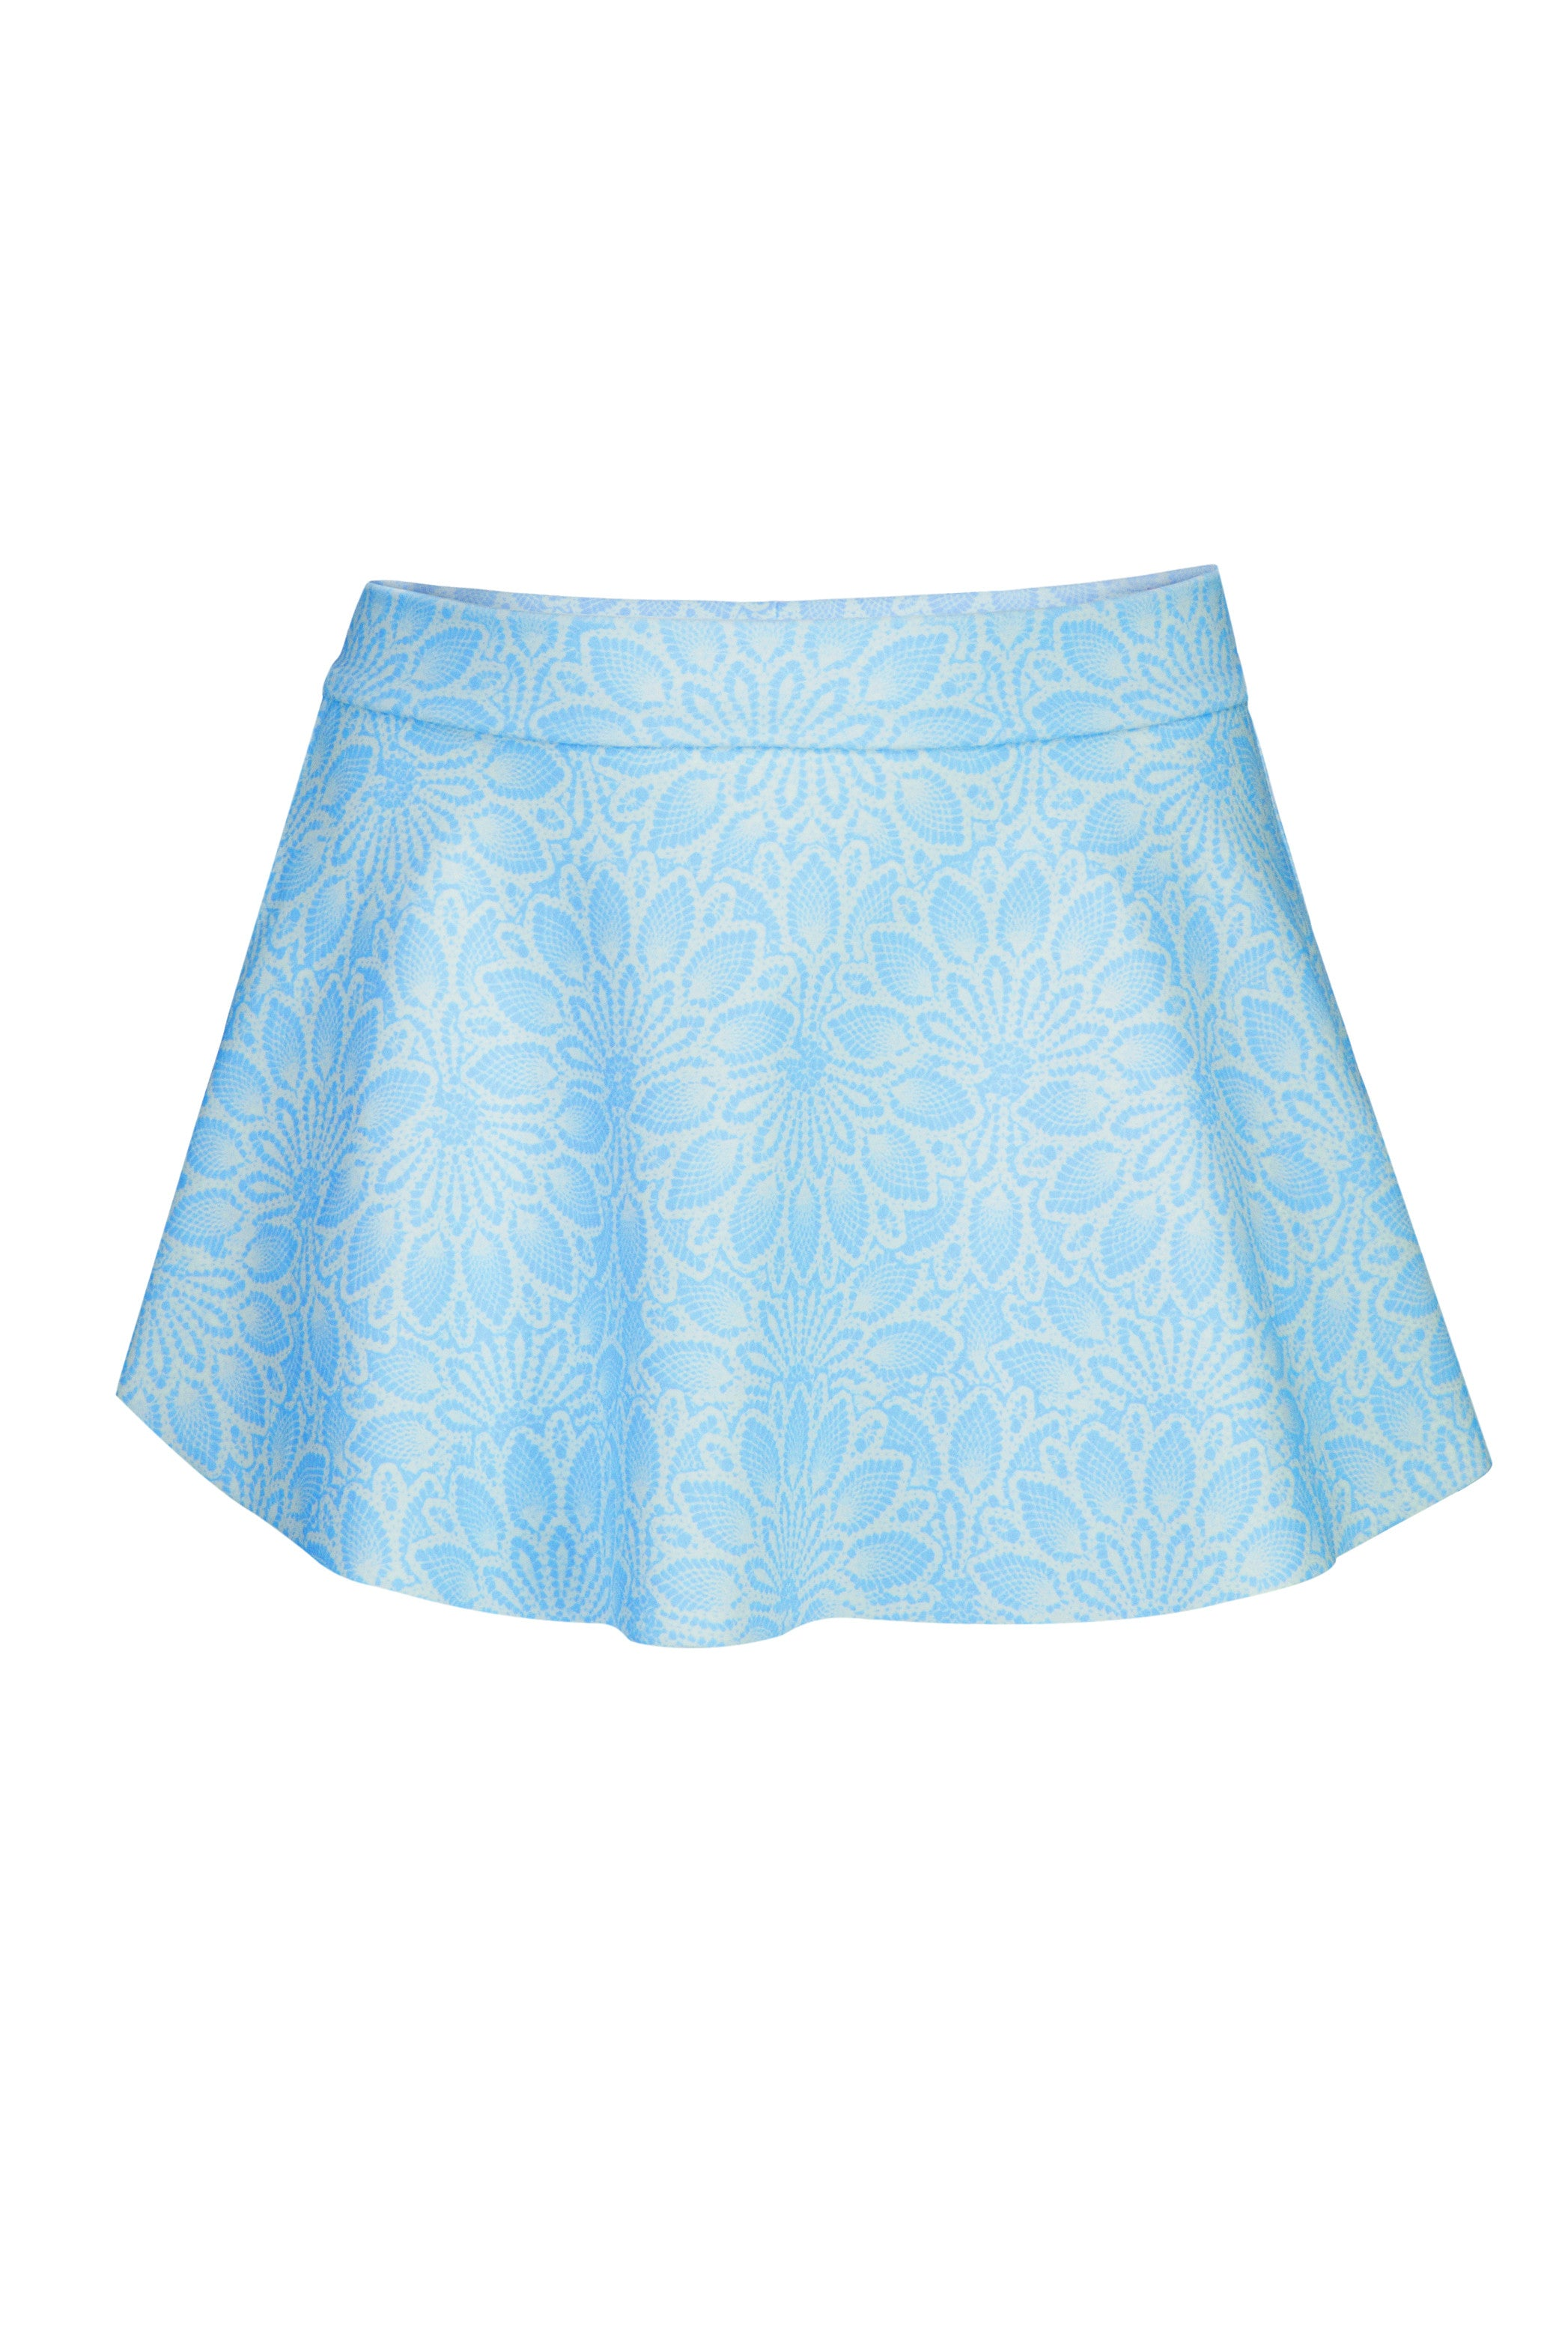 T10996C Girl's Boho Fairytale Moonshadow Reversible Skirt